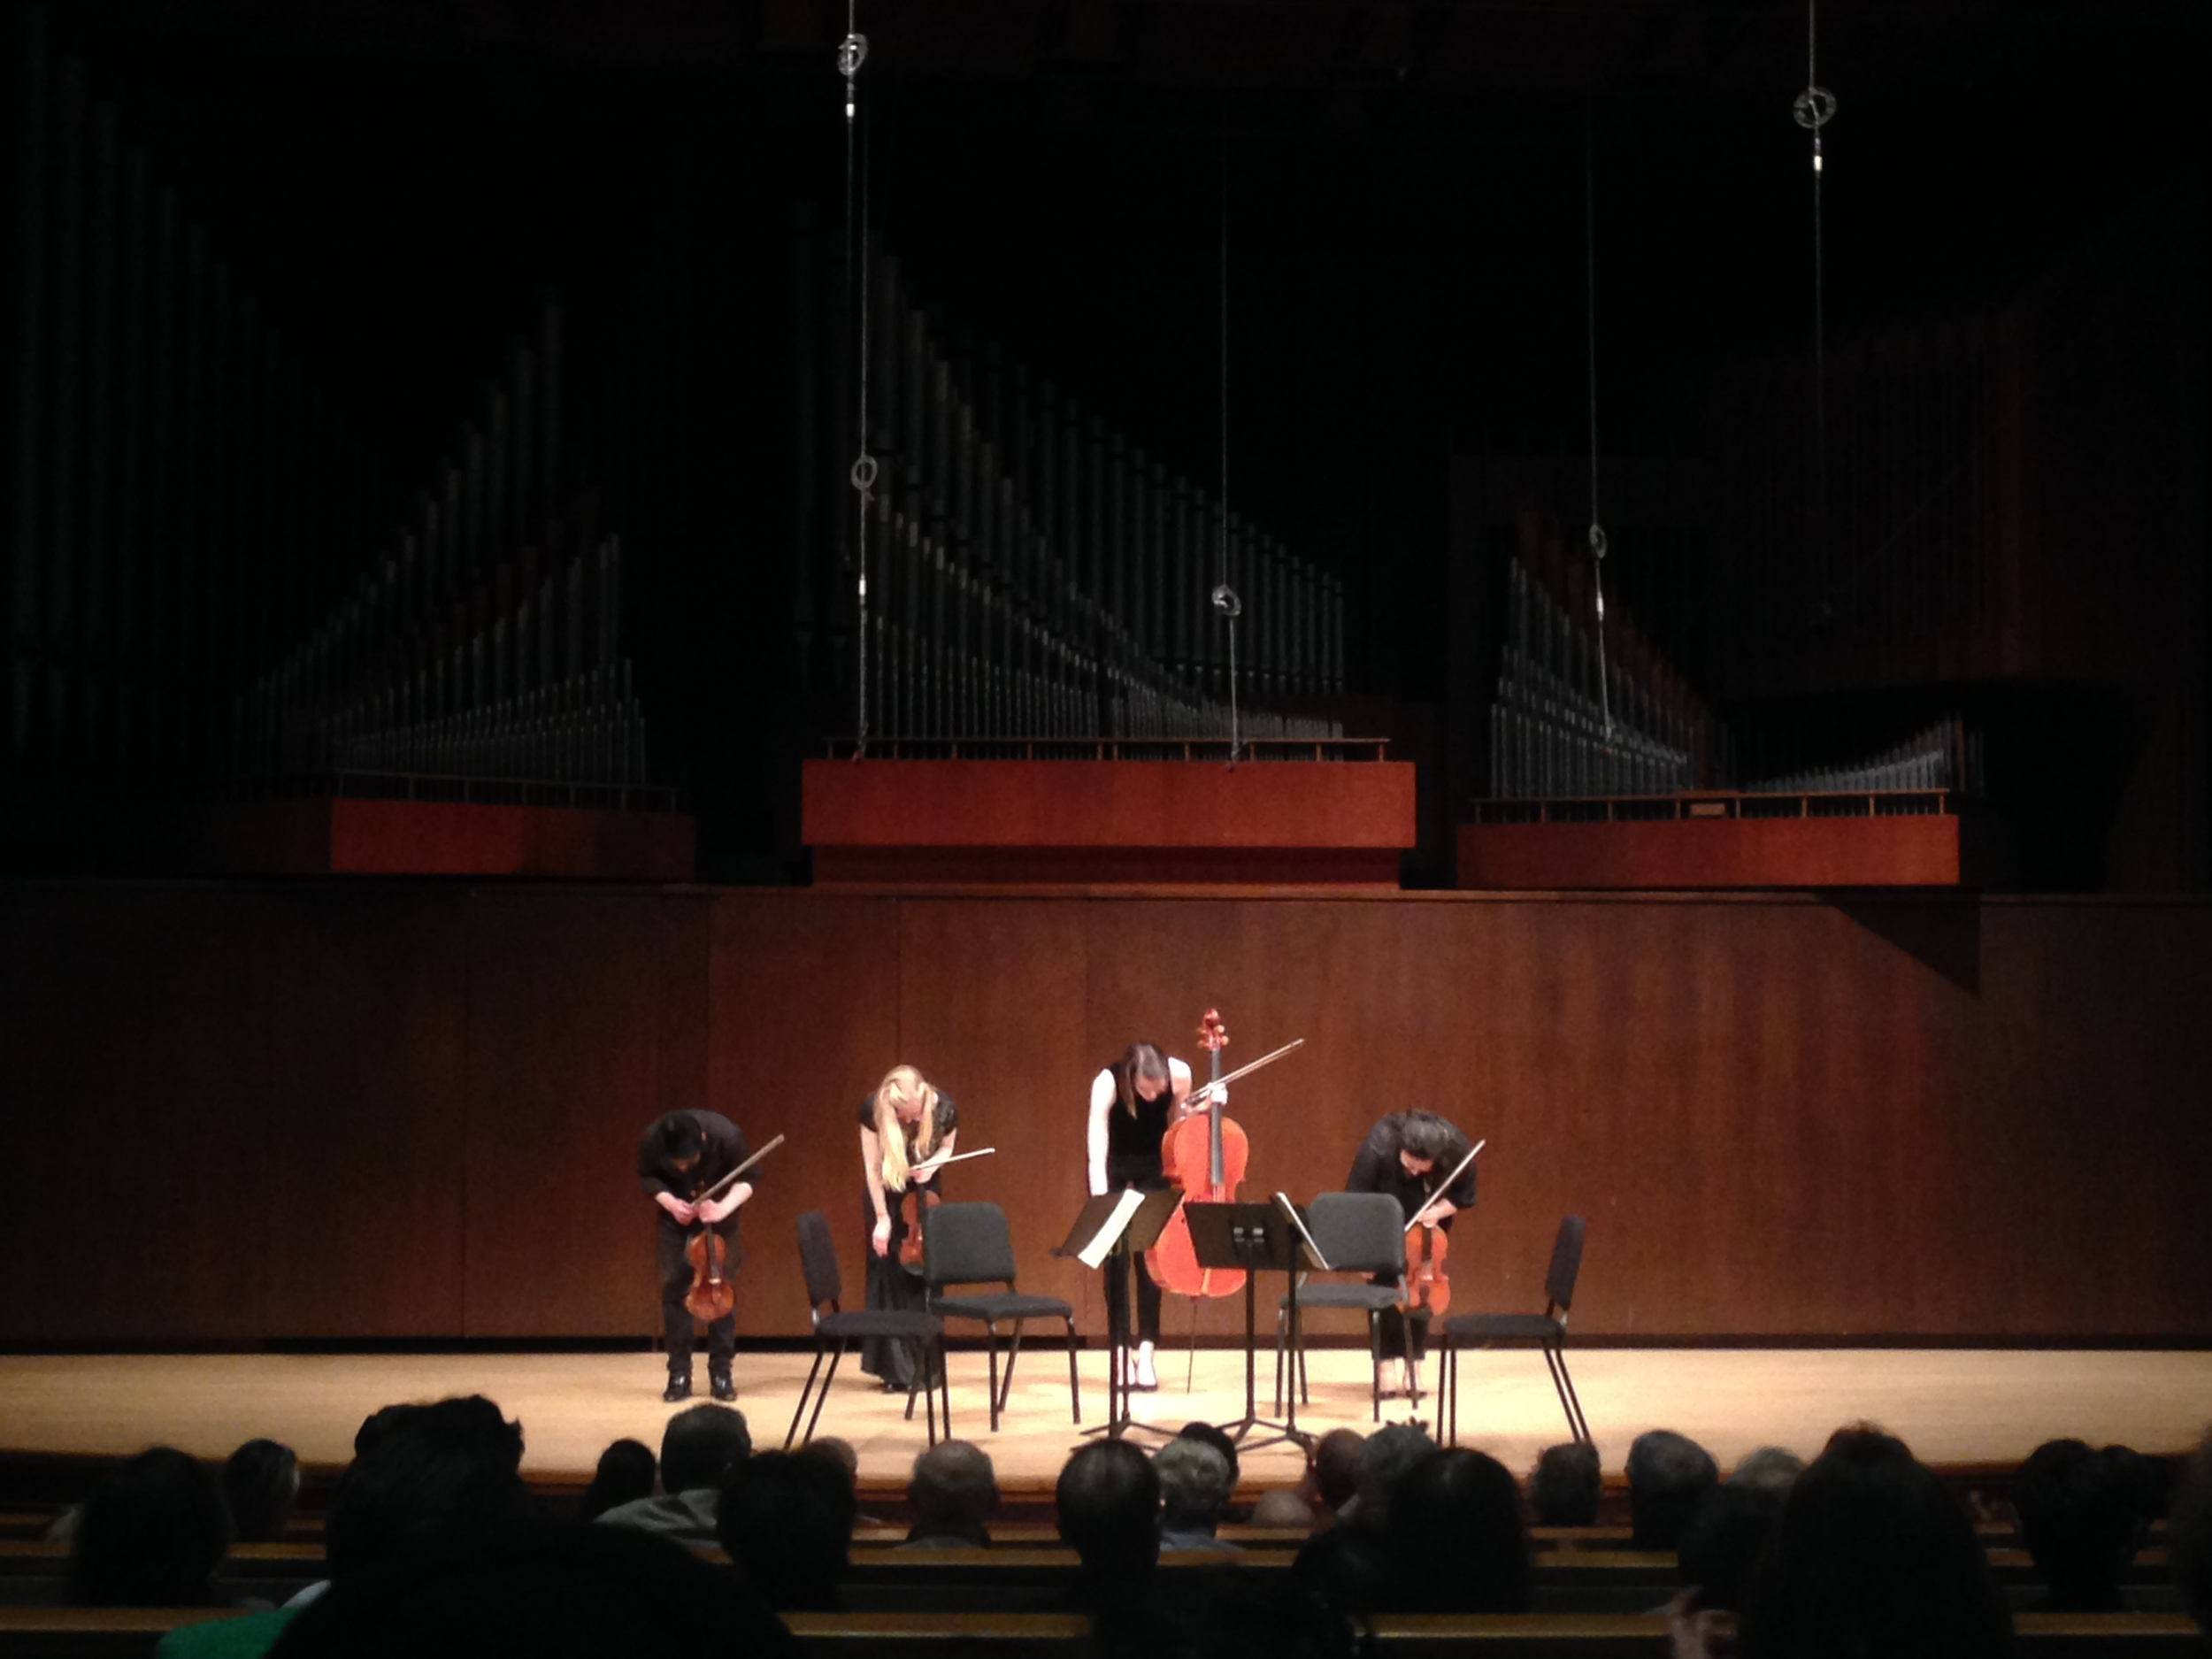 Congratulations to my dear roommate's marvelous string quartet